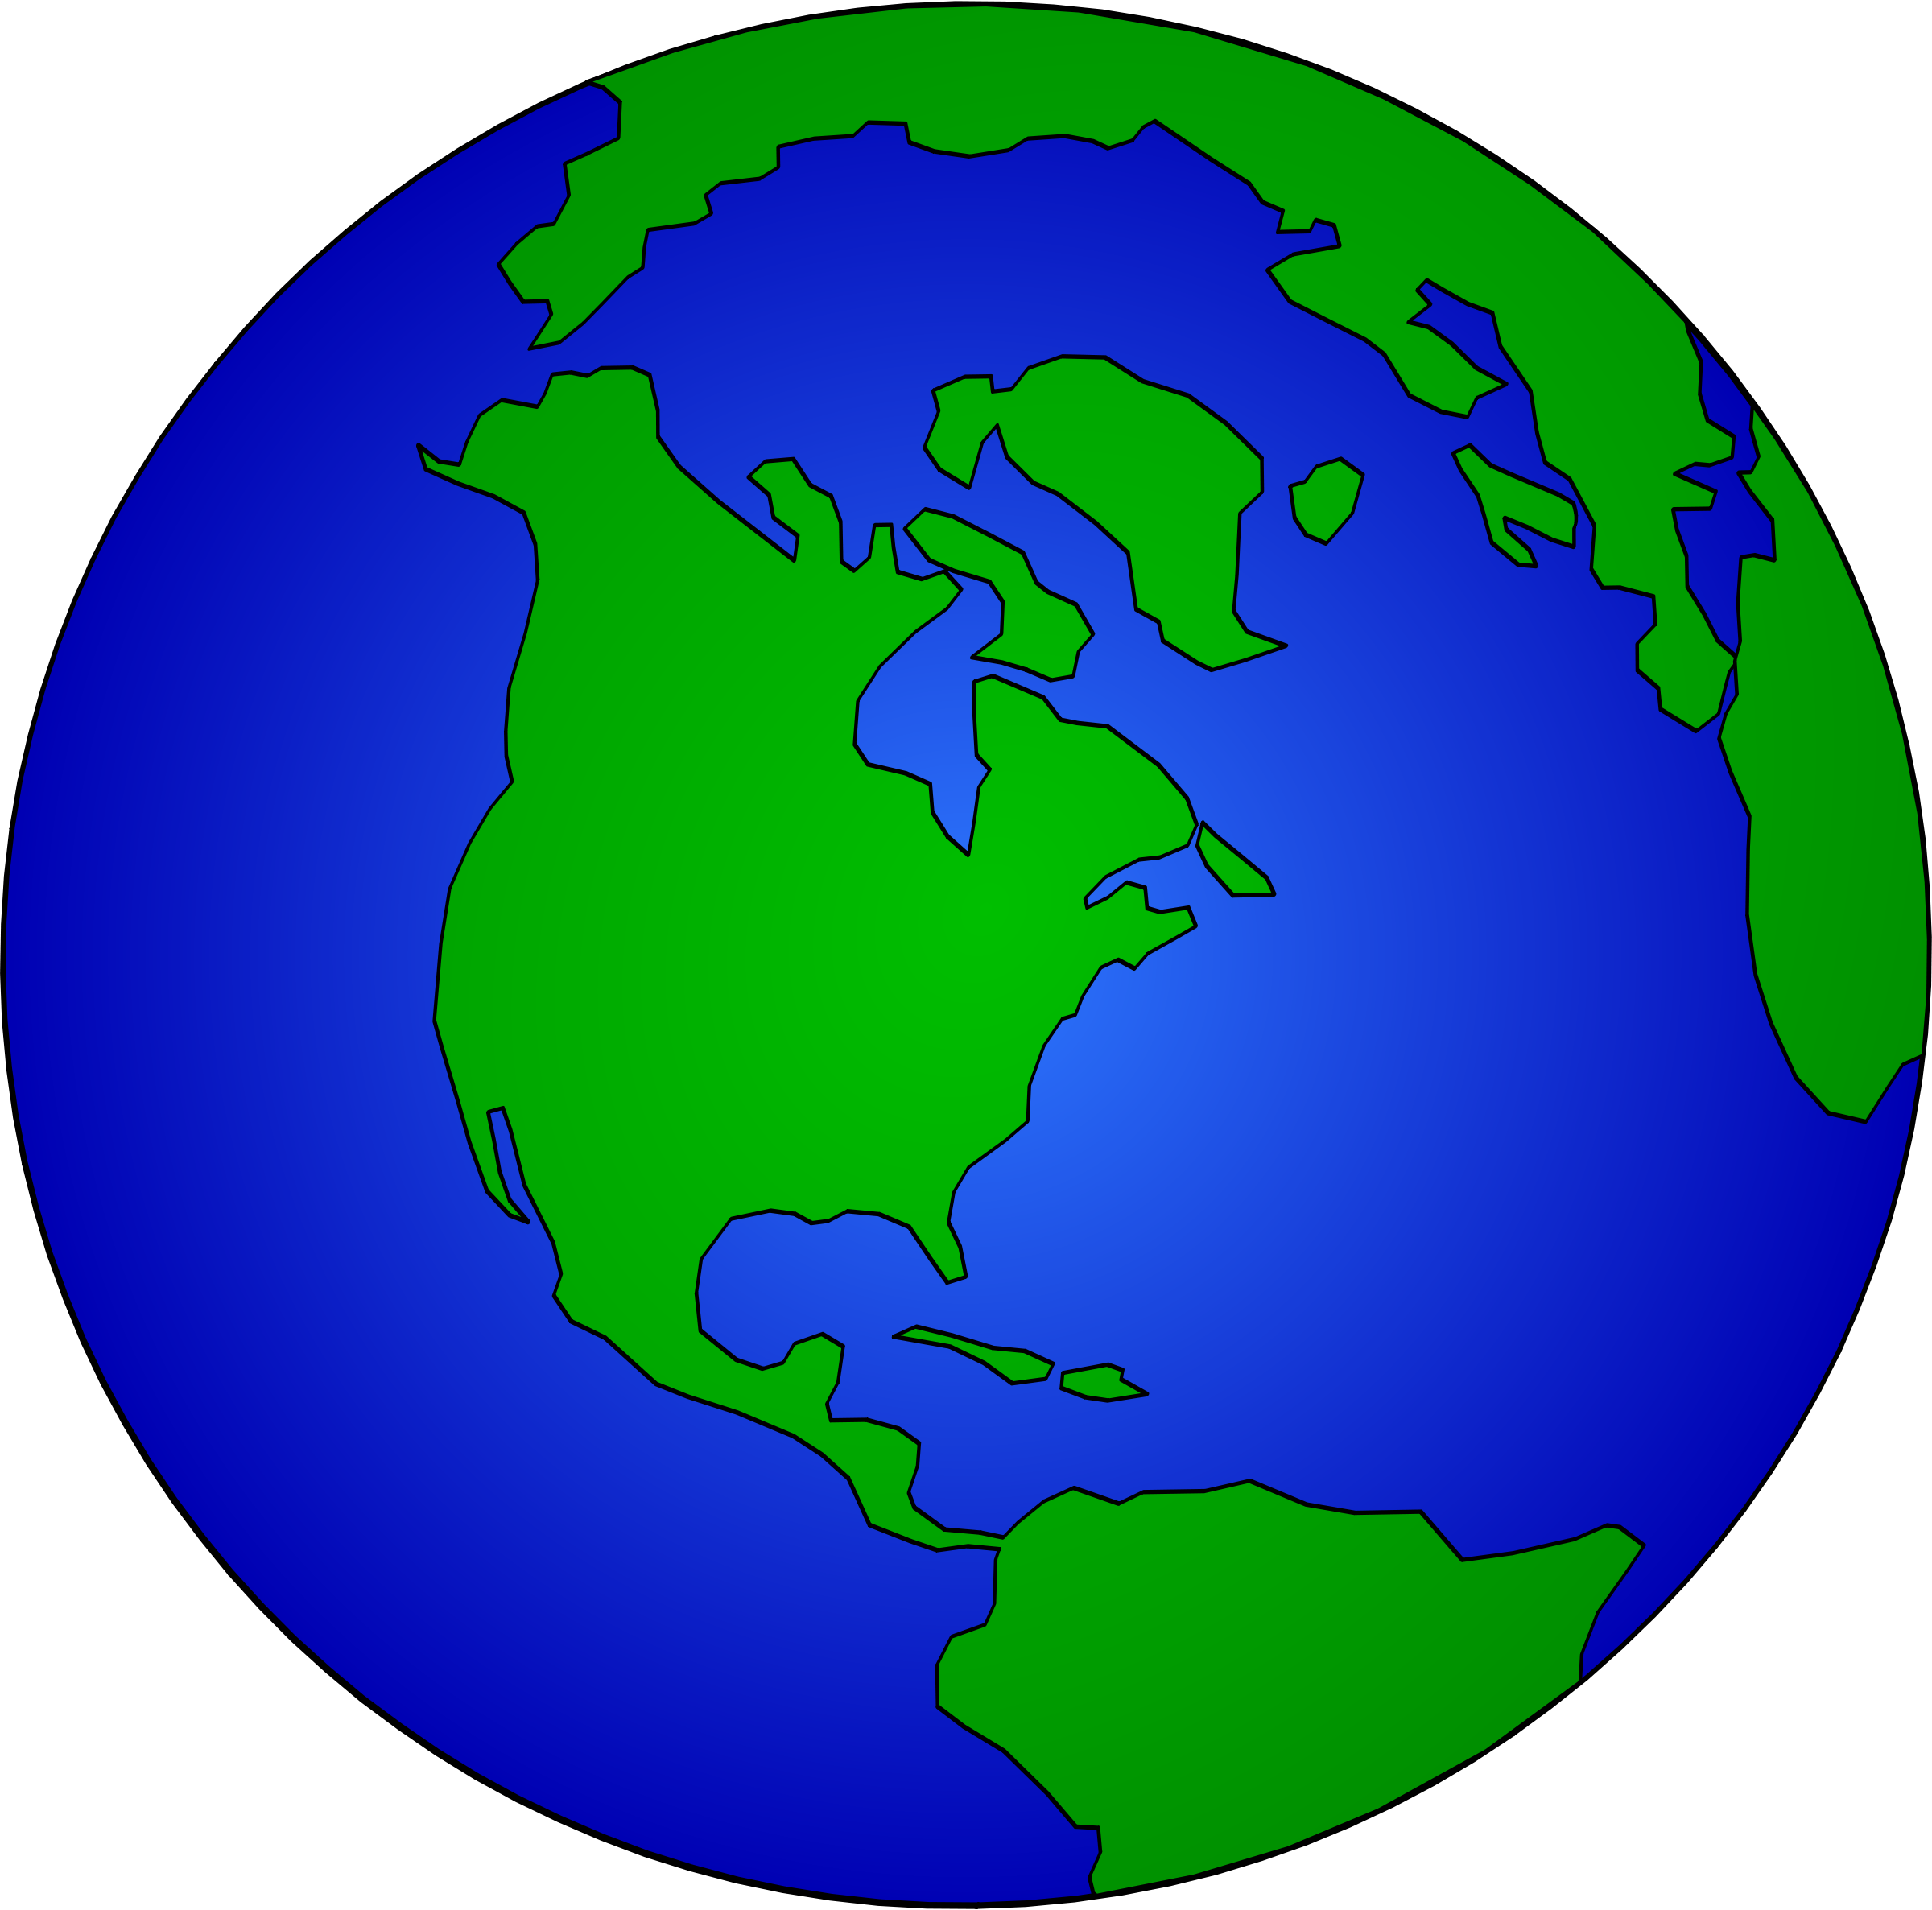 Earth clipart #3, Download drawings